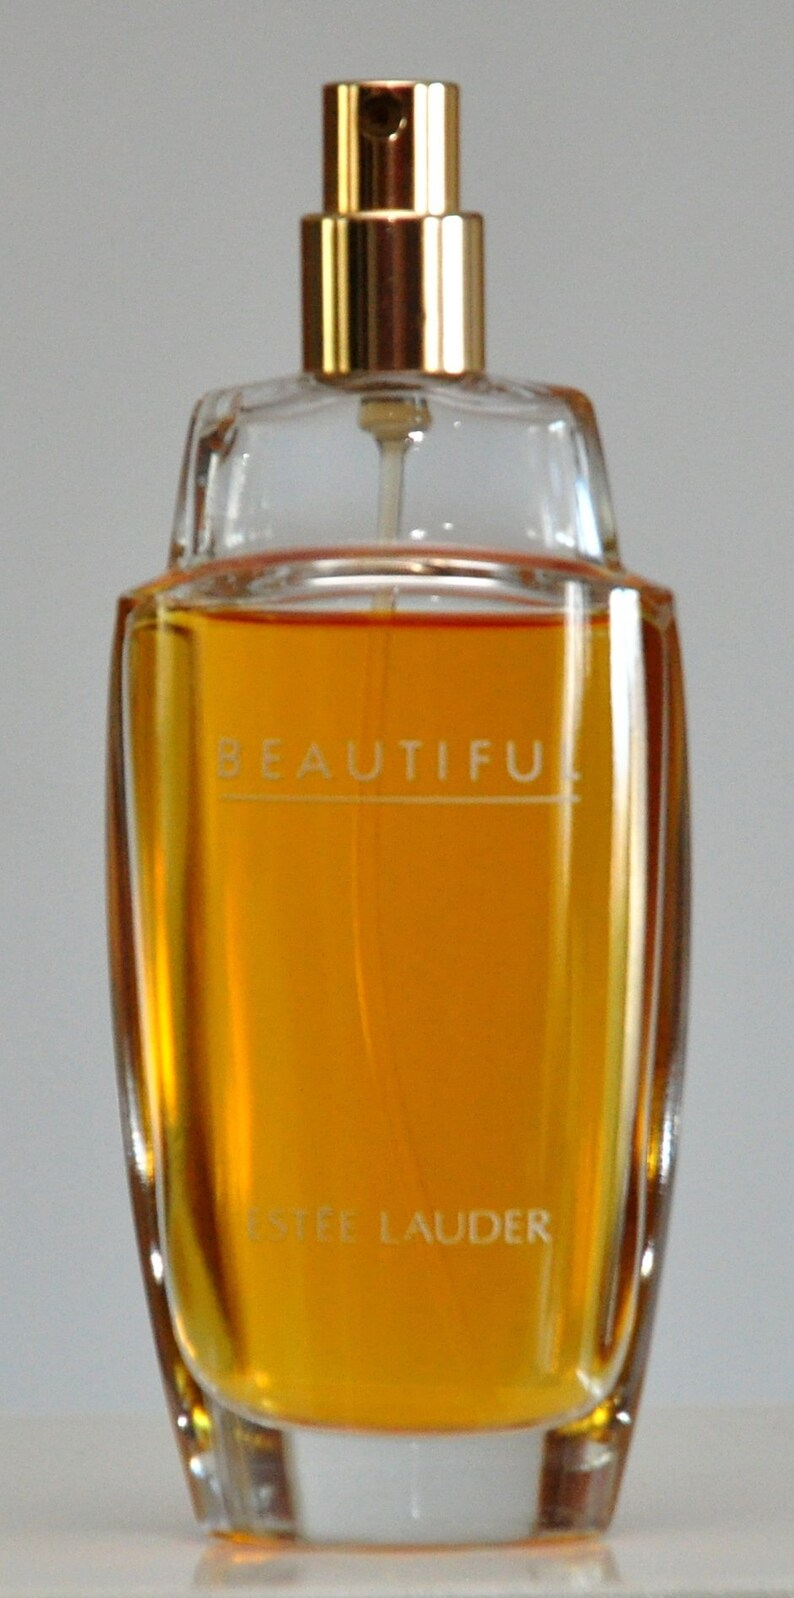 Eau Woman Perfume 75ml FlOzSpray De Beautiful 5 For Vintage Old Edp Rare 2 Lauder 1985 Parfum Estée mOy0vNwP8n